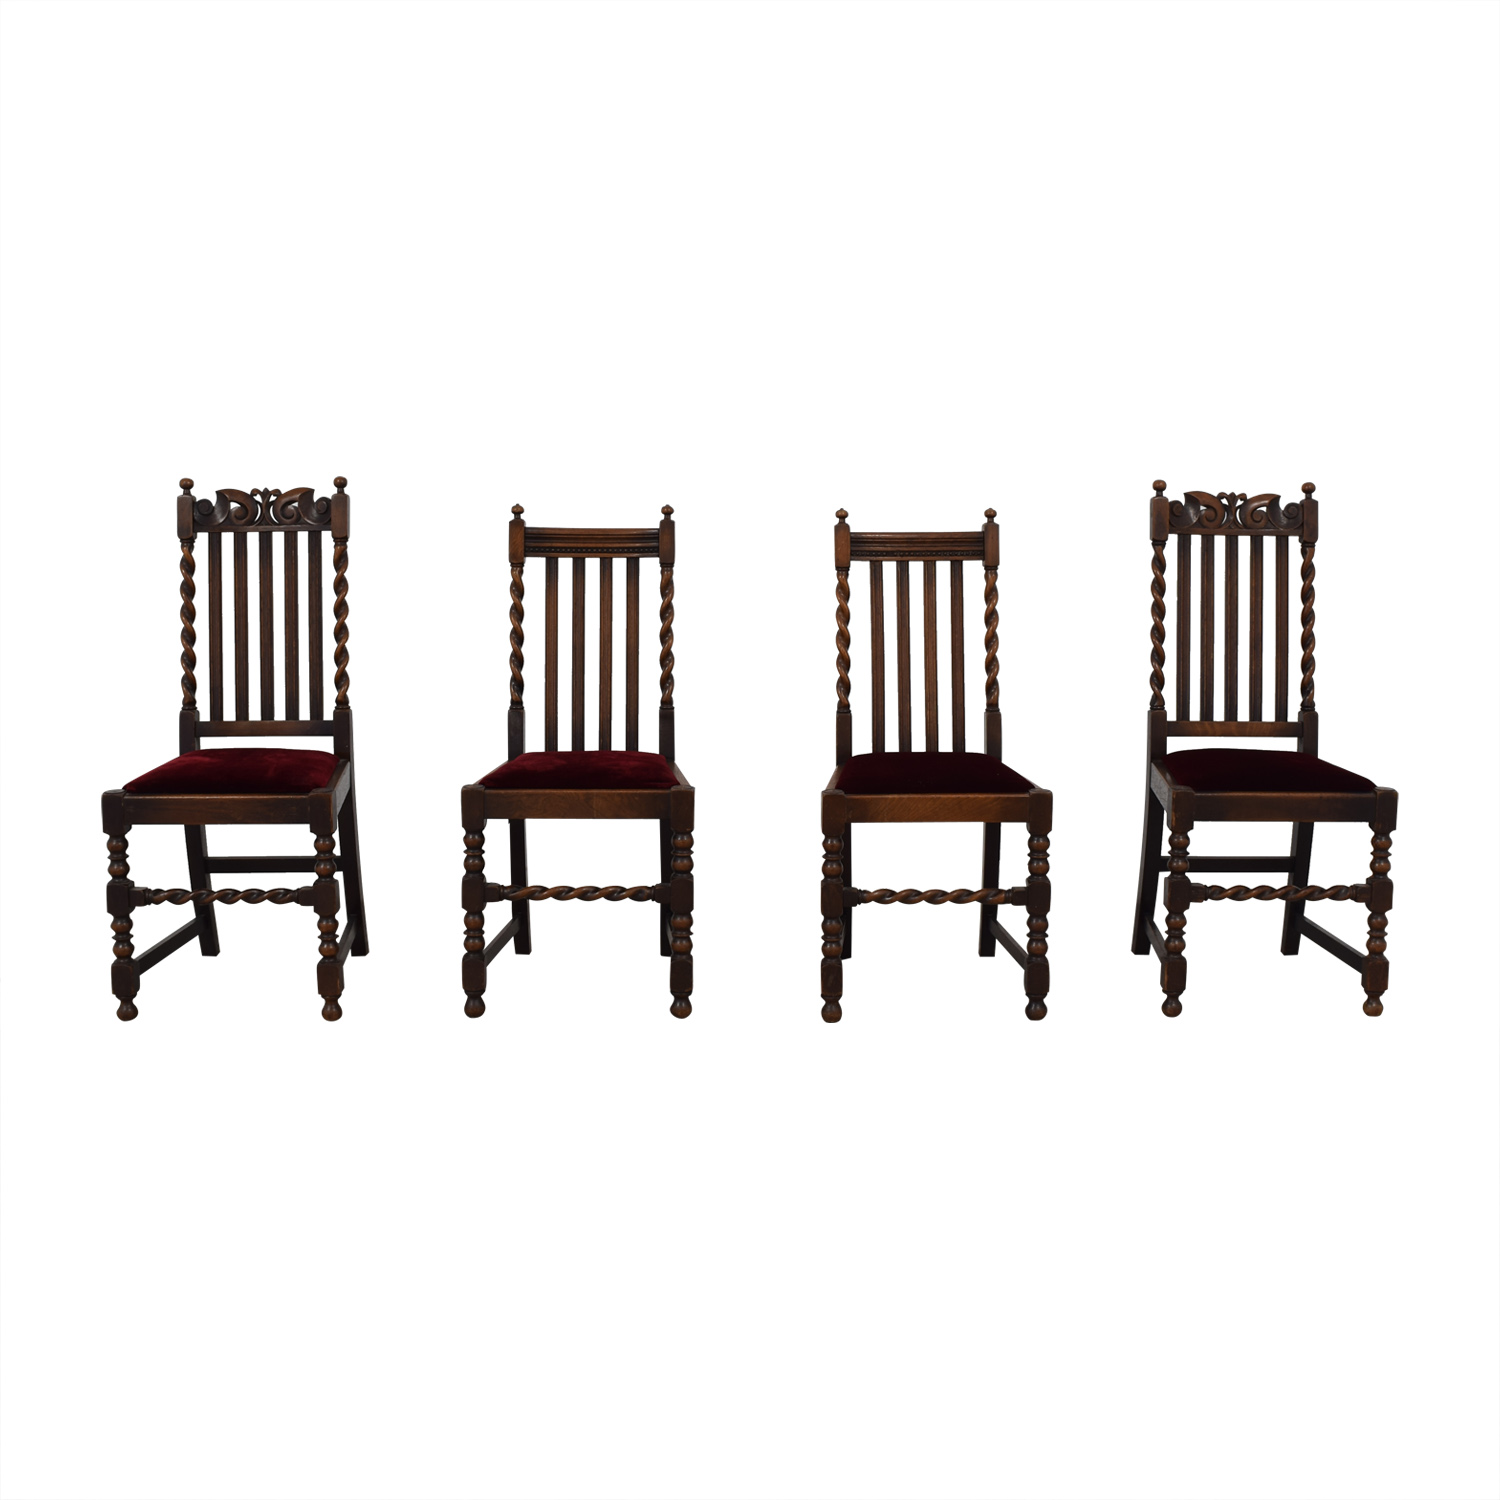 Jacobian Barley Twist Chairs / Dining Chairs